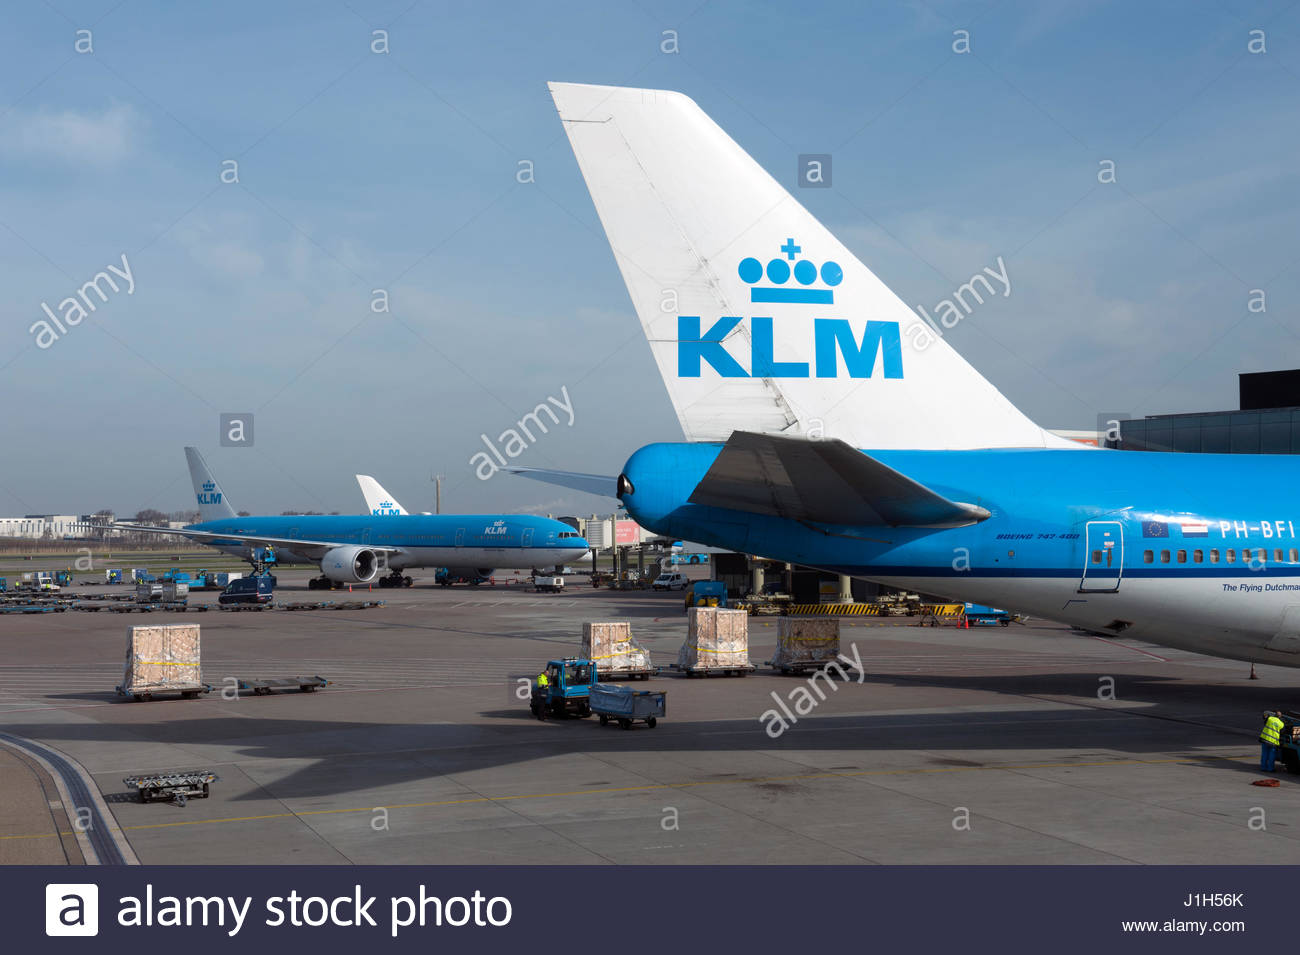 Blue apron engineering - Amsterdam The Netherlands Klm Logo On The Tailfins Of Aircraft On The Apron At Schiphol Airport